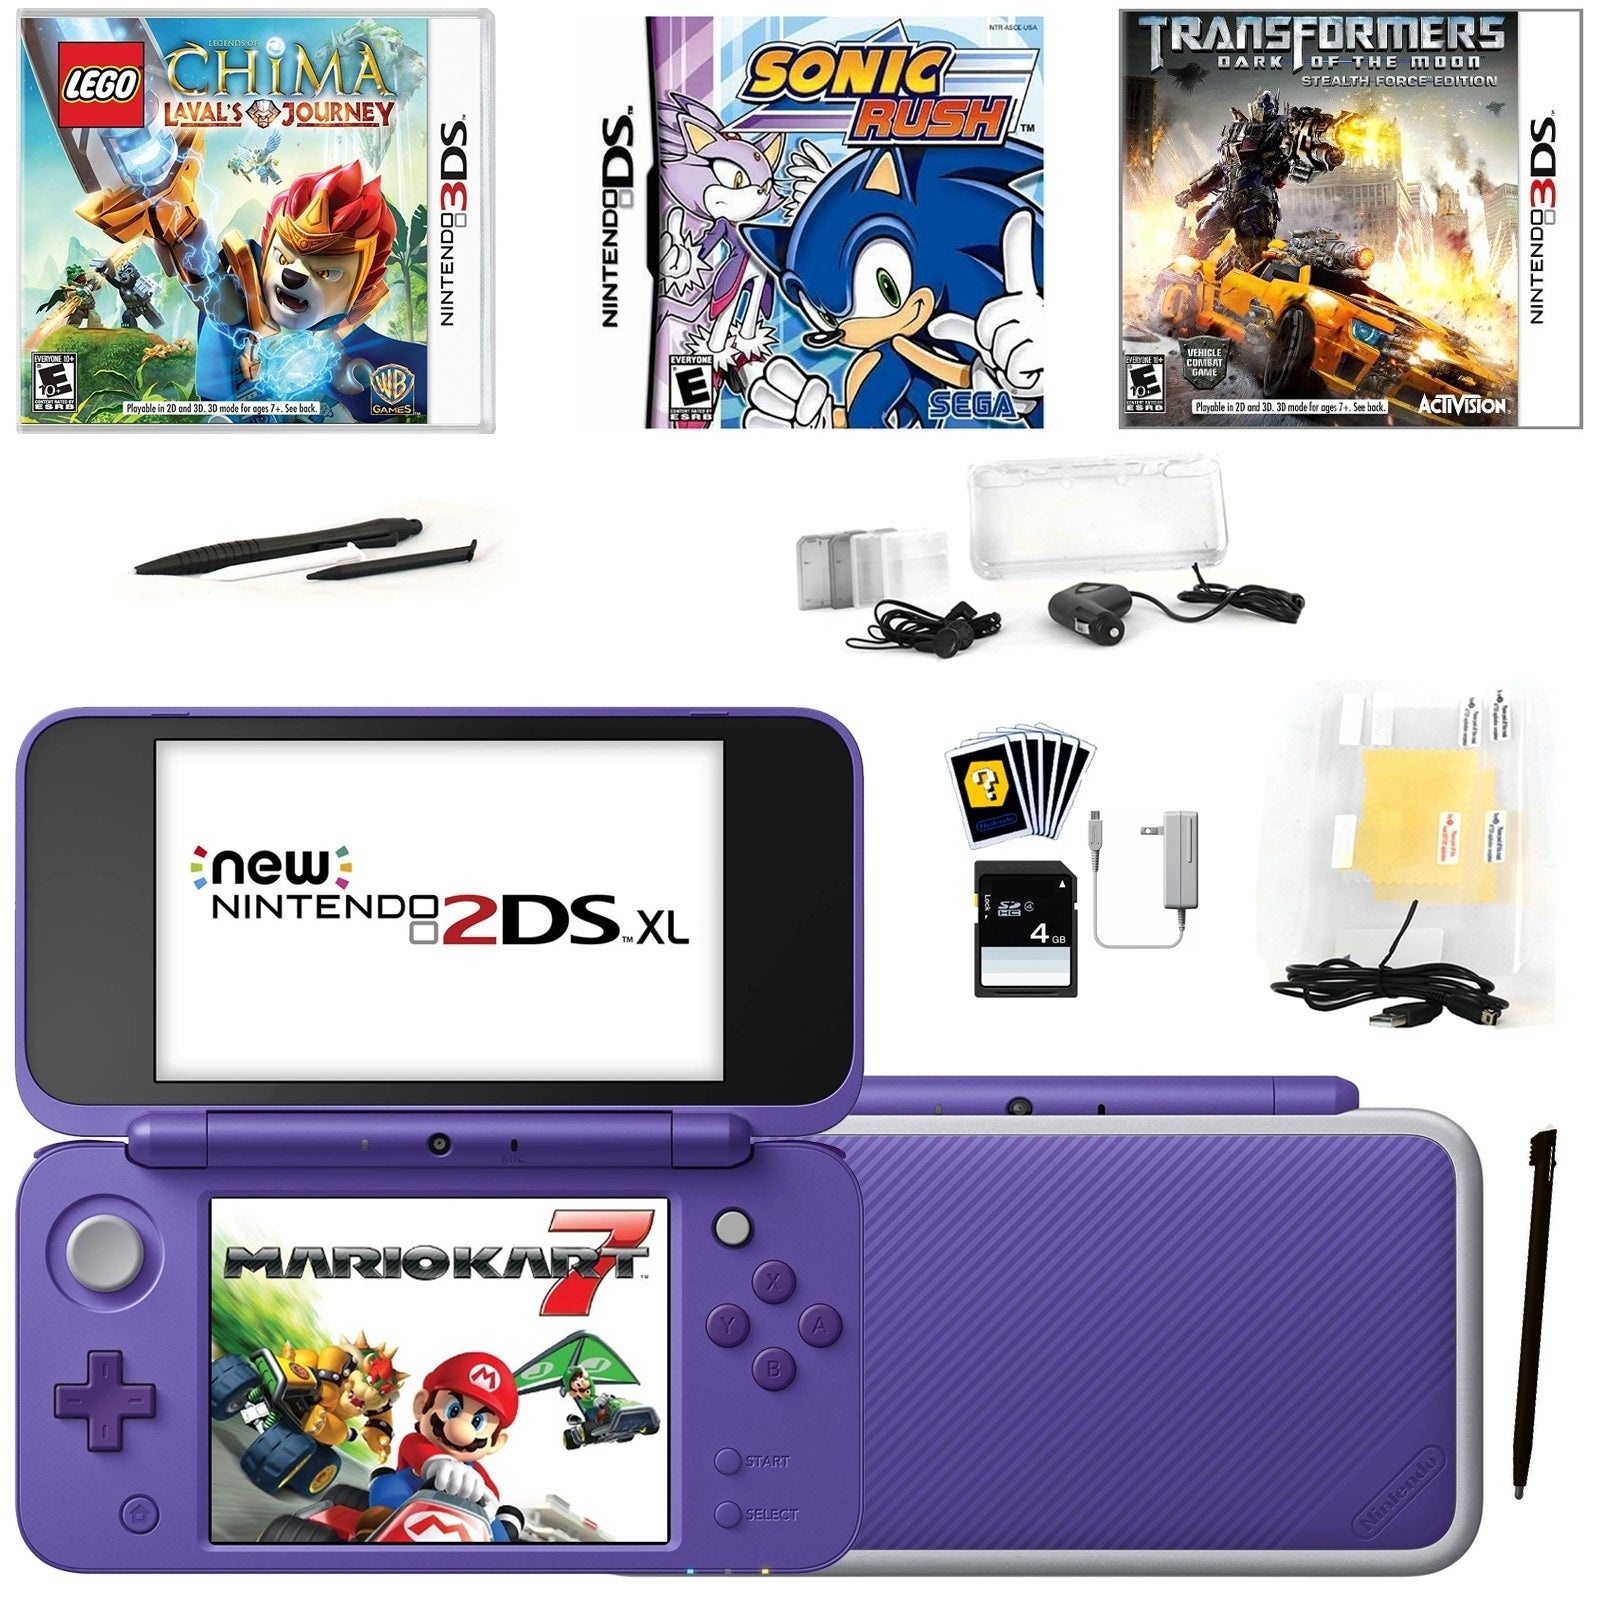 Shop New Nintendo 2DSXL with Mario Kart 7 in Purple with Games and Access.  - Free Shipping Today - Overstock.com - 25481667